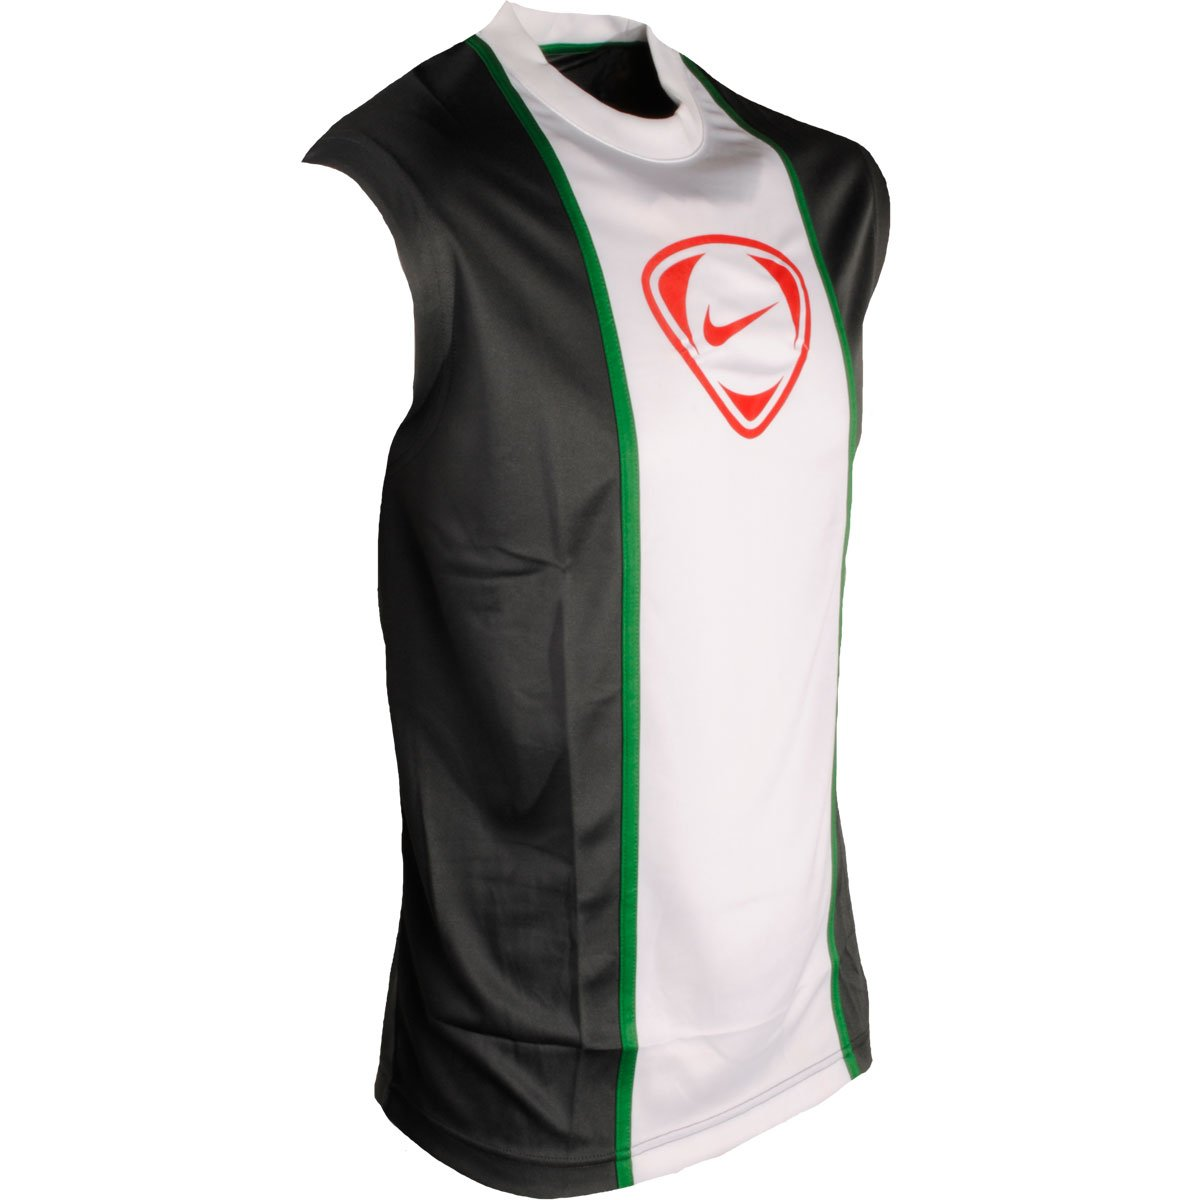 18a867a251c4 Nike Men s Football Swoosh Logo Front Dri-Fit Vest Sleeveless Sports Summer  Tops Multicolour M  Amazon.co.uk  Clothing